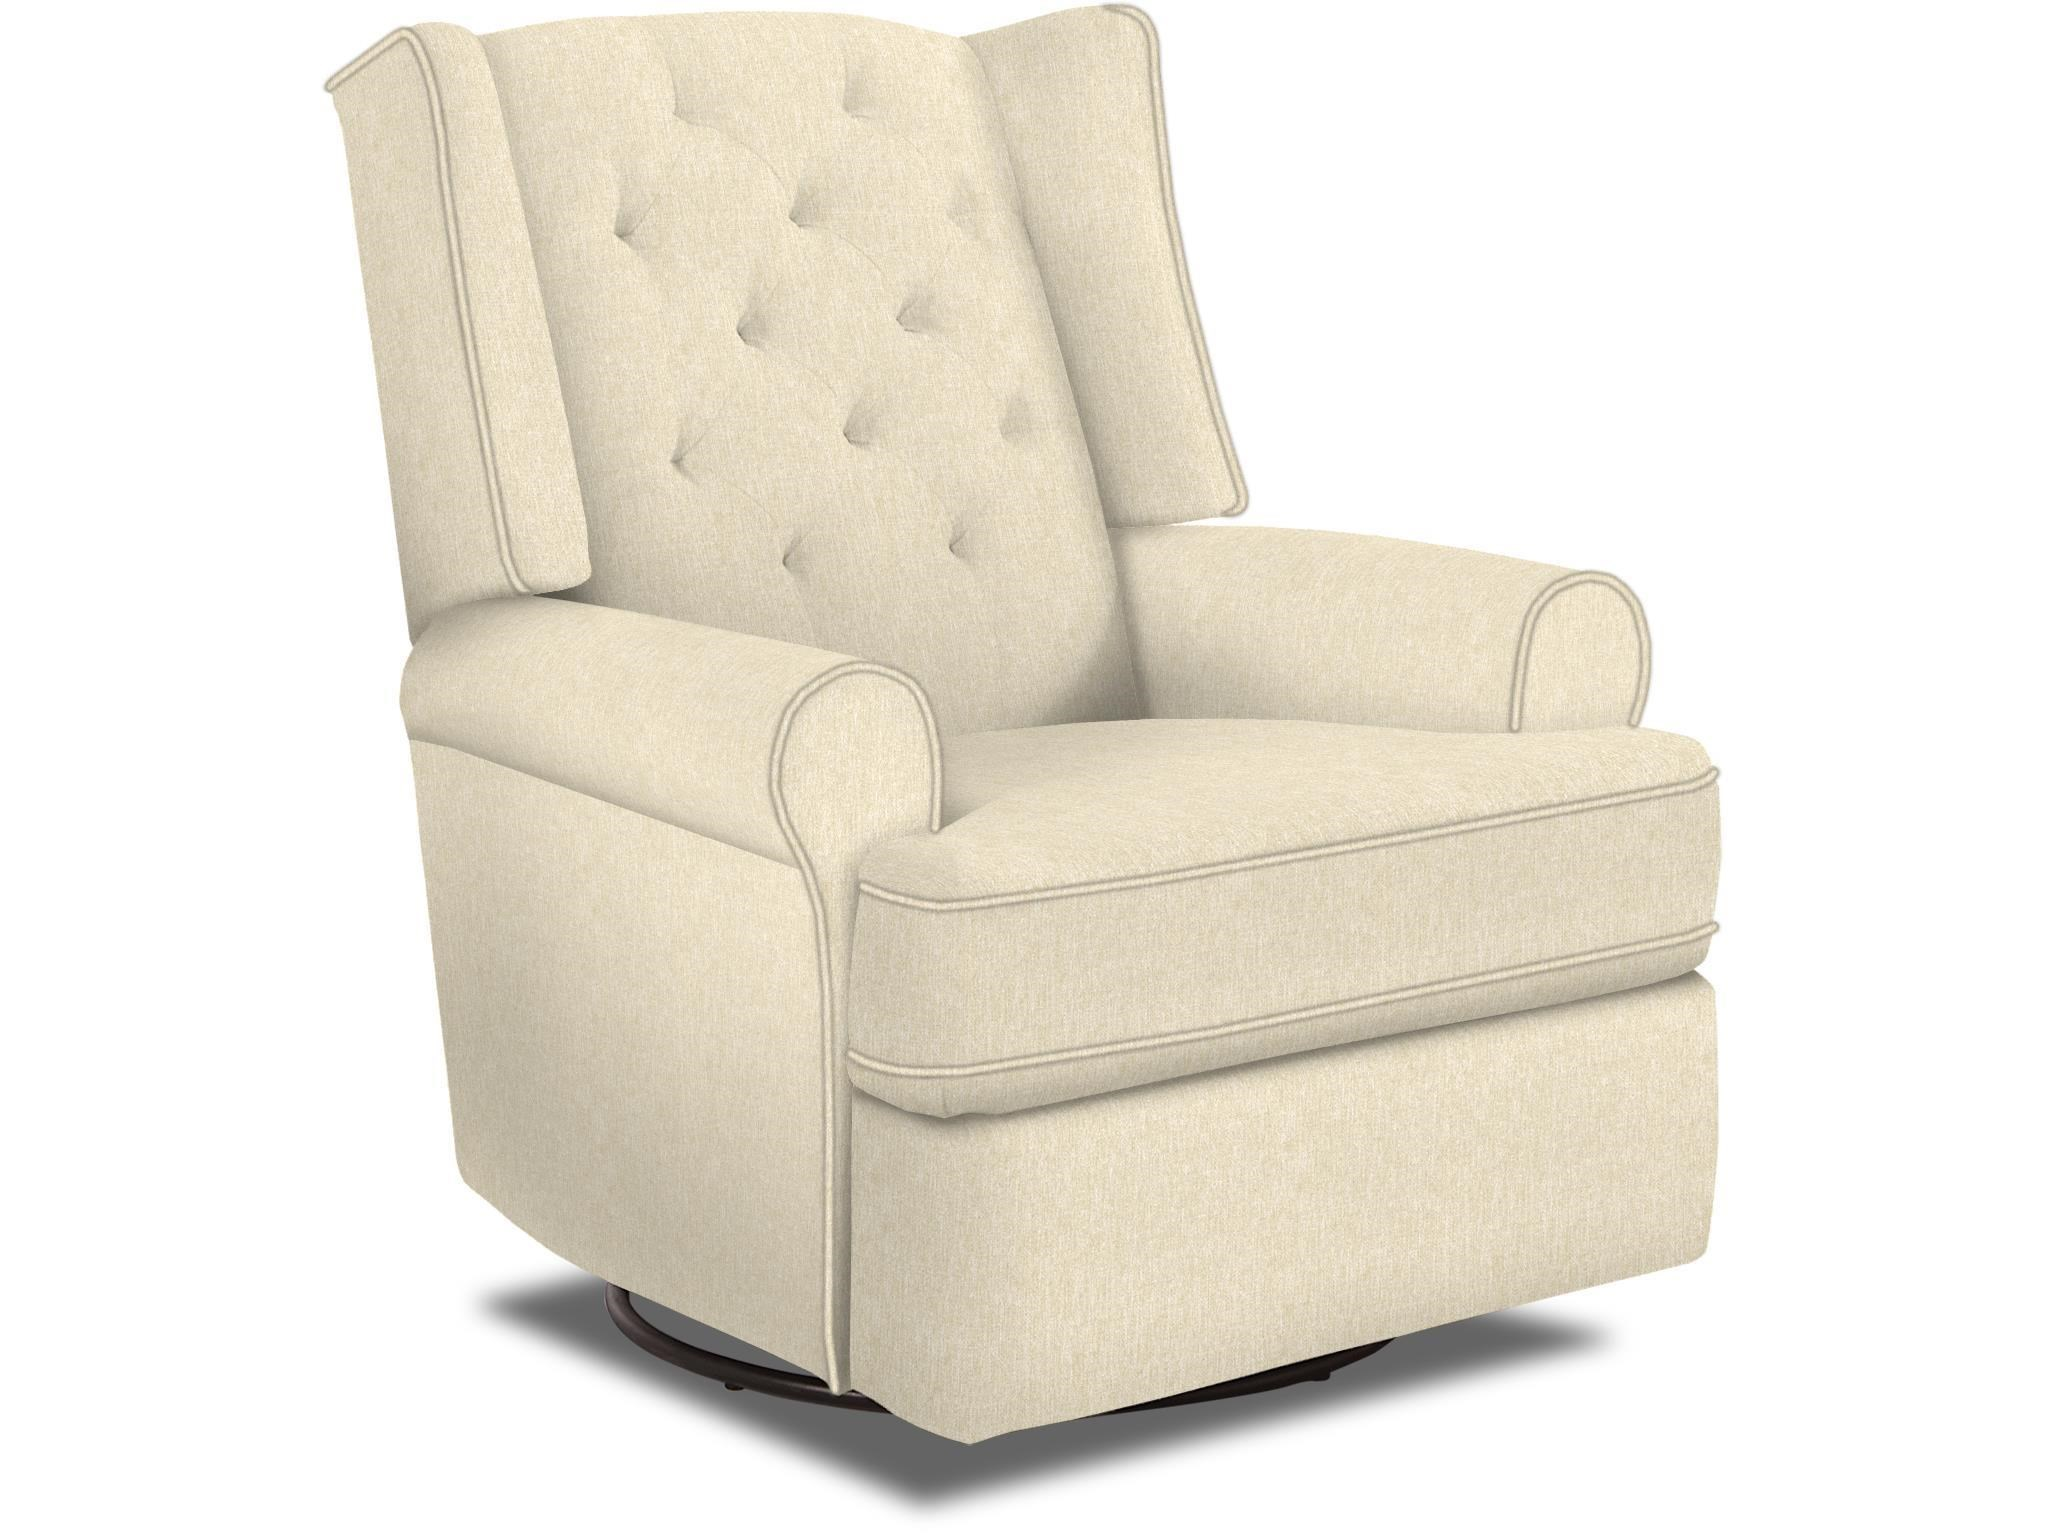 Best Home Furnishings Kendra Traditional Tufted Swivel Glider Recliner With  Inside Handle